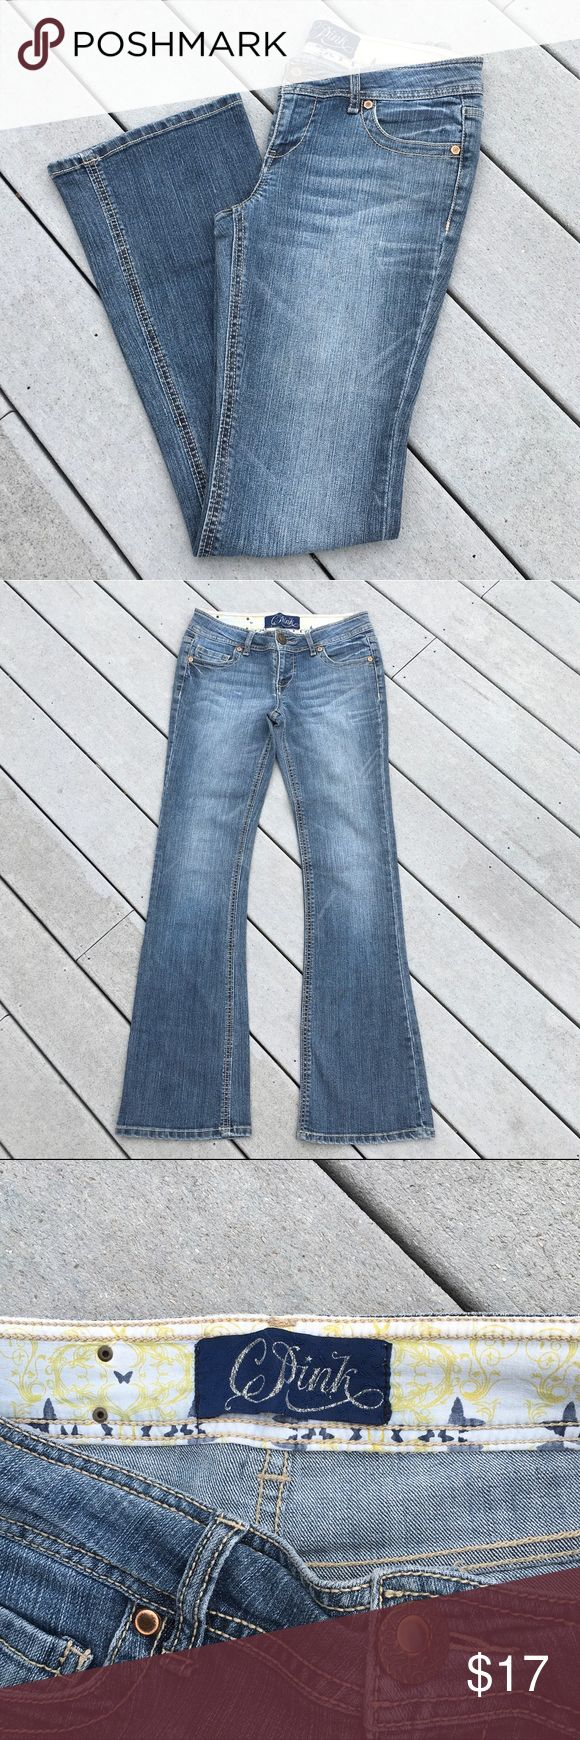 """🔴 Celebrity Pink Bootcut Jeans C Pink Jeans: Very good condition, although, few small gold embellishments missing from back pockets. No rips, tears or stains. 86% cotton, 13% polyester, 1% spandex. Front rise: 8.25"""", hip to hip: 14.75"""", inseam: 32"""". *Note: these are not VS PINK brand. Celebrity Pink Jeans Boot Cut"""